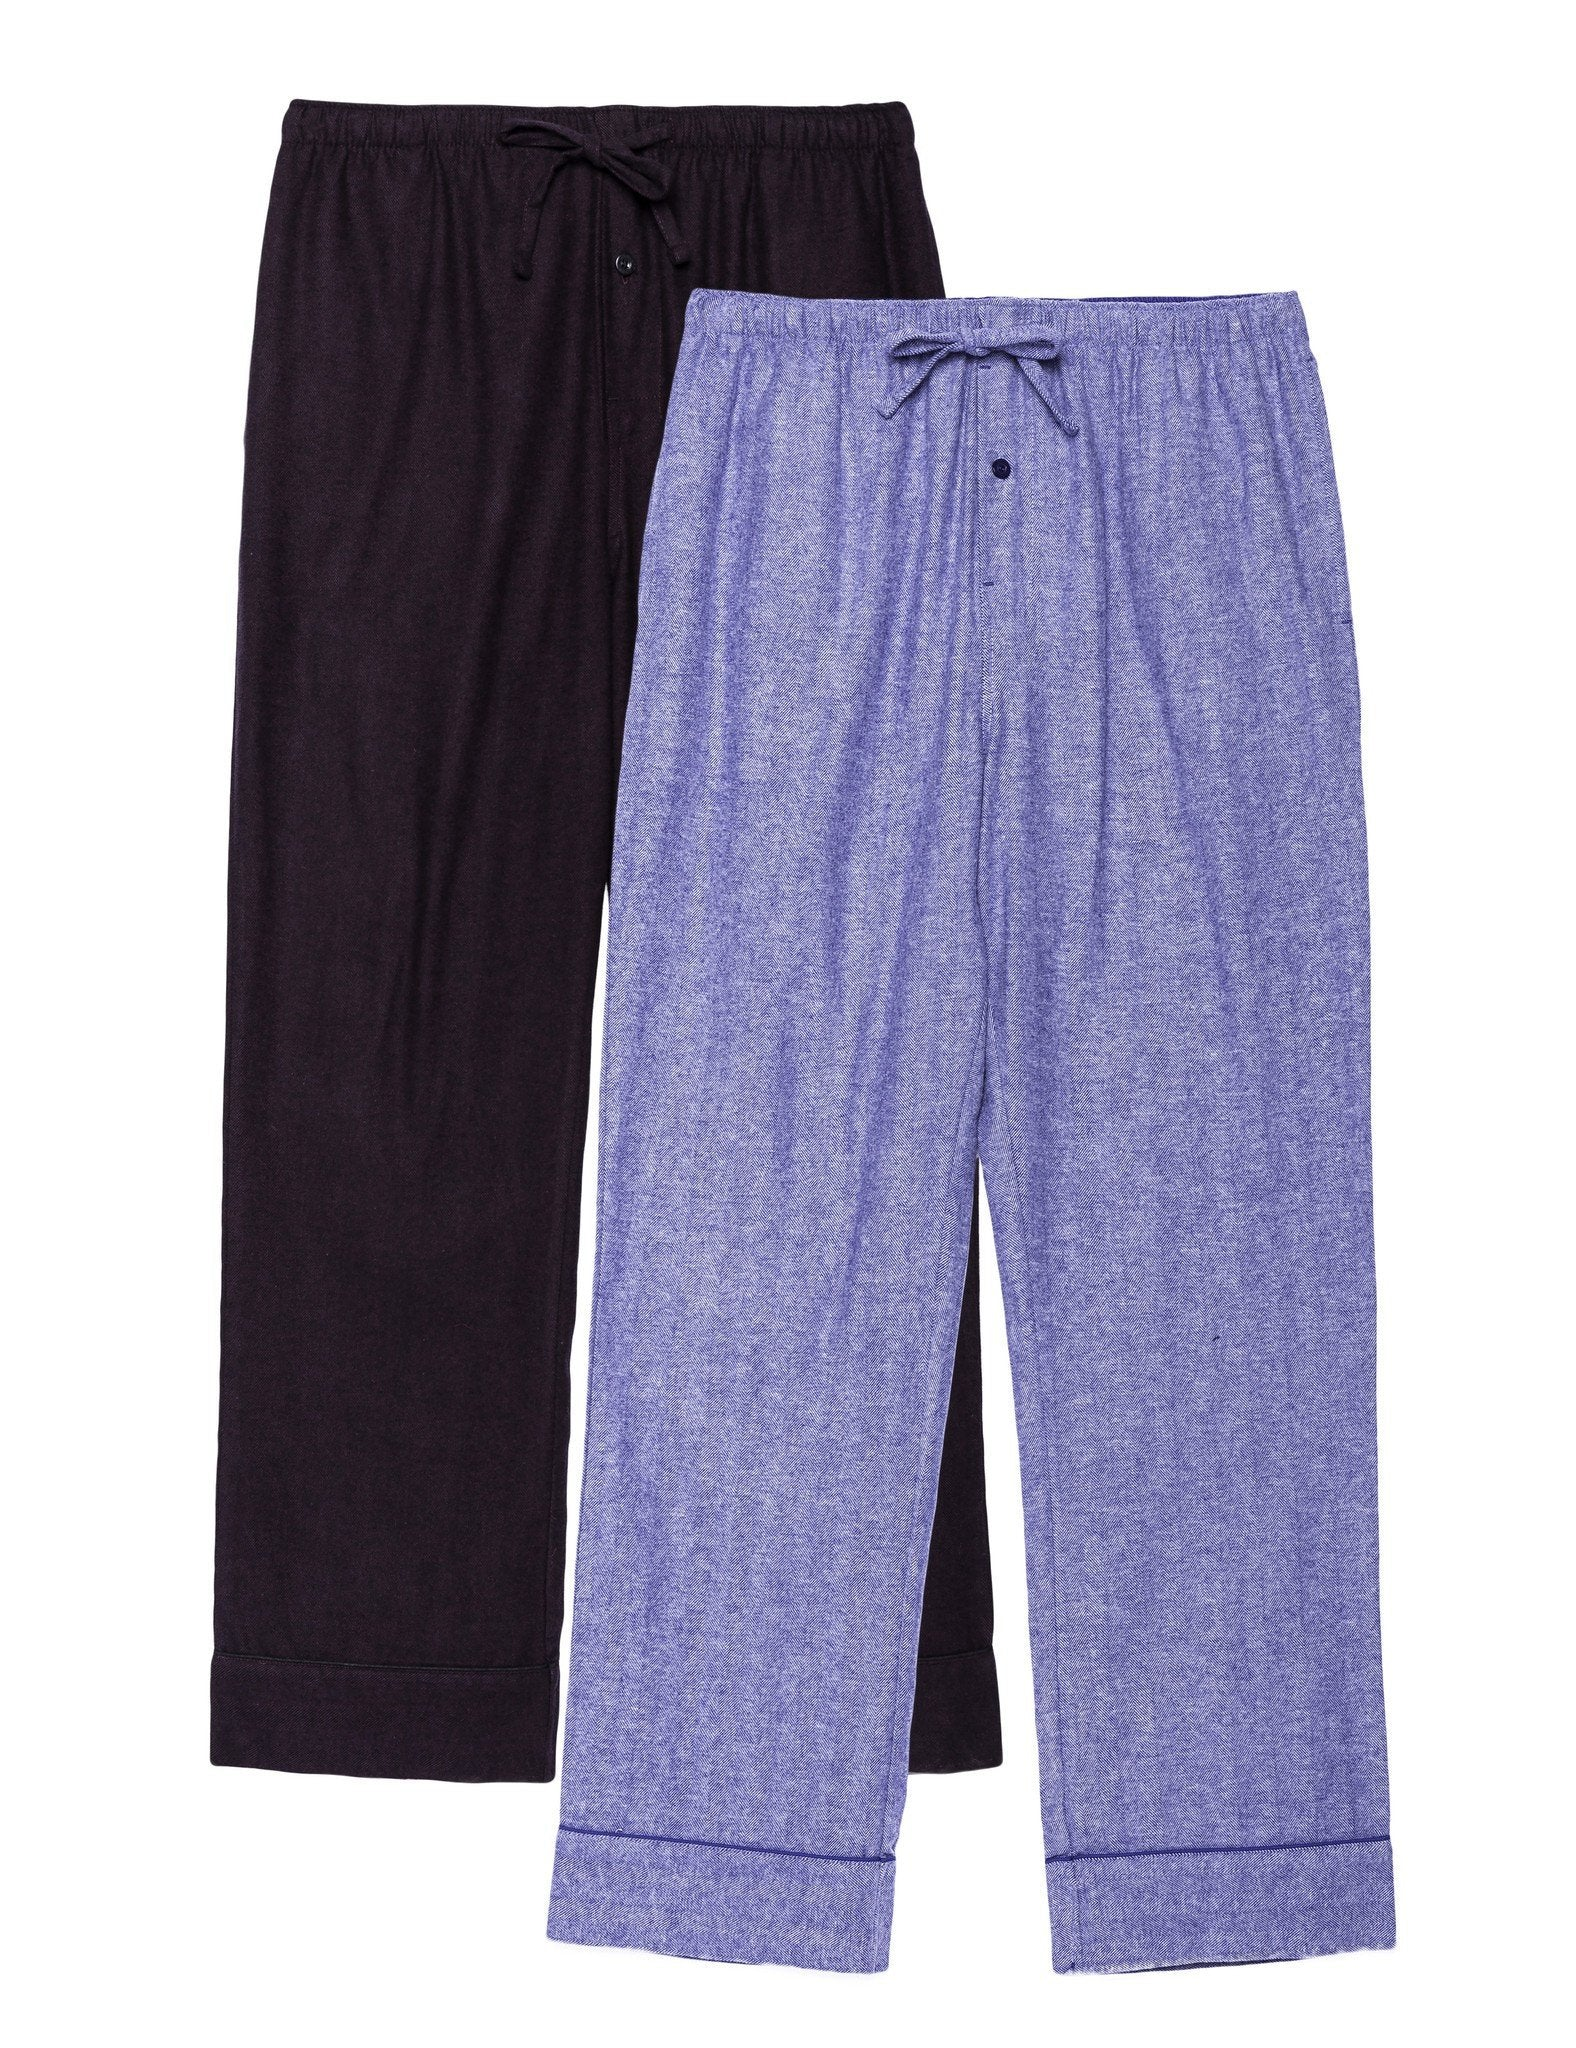 2-Pack Men's 100% Cotton Flannel Lounge Pants (Herringbone Blue/Fig-Black)